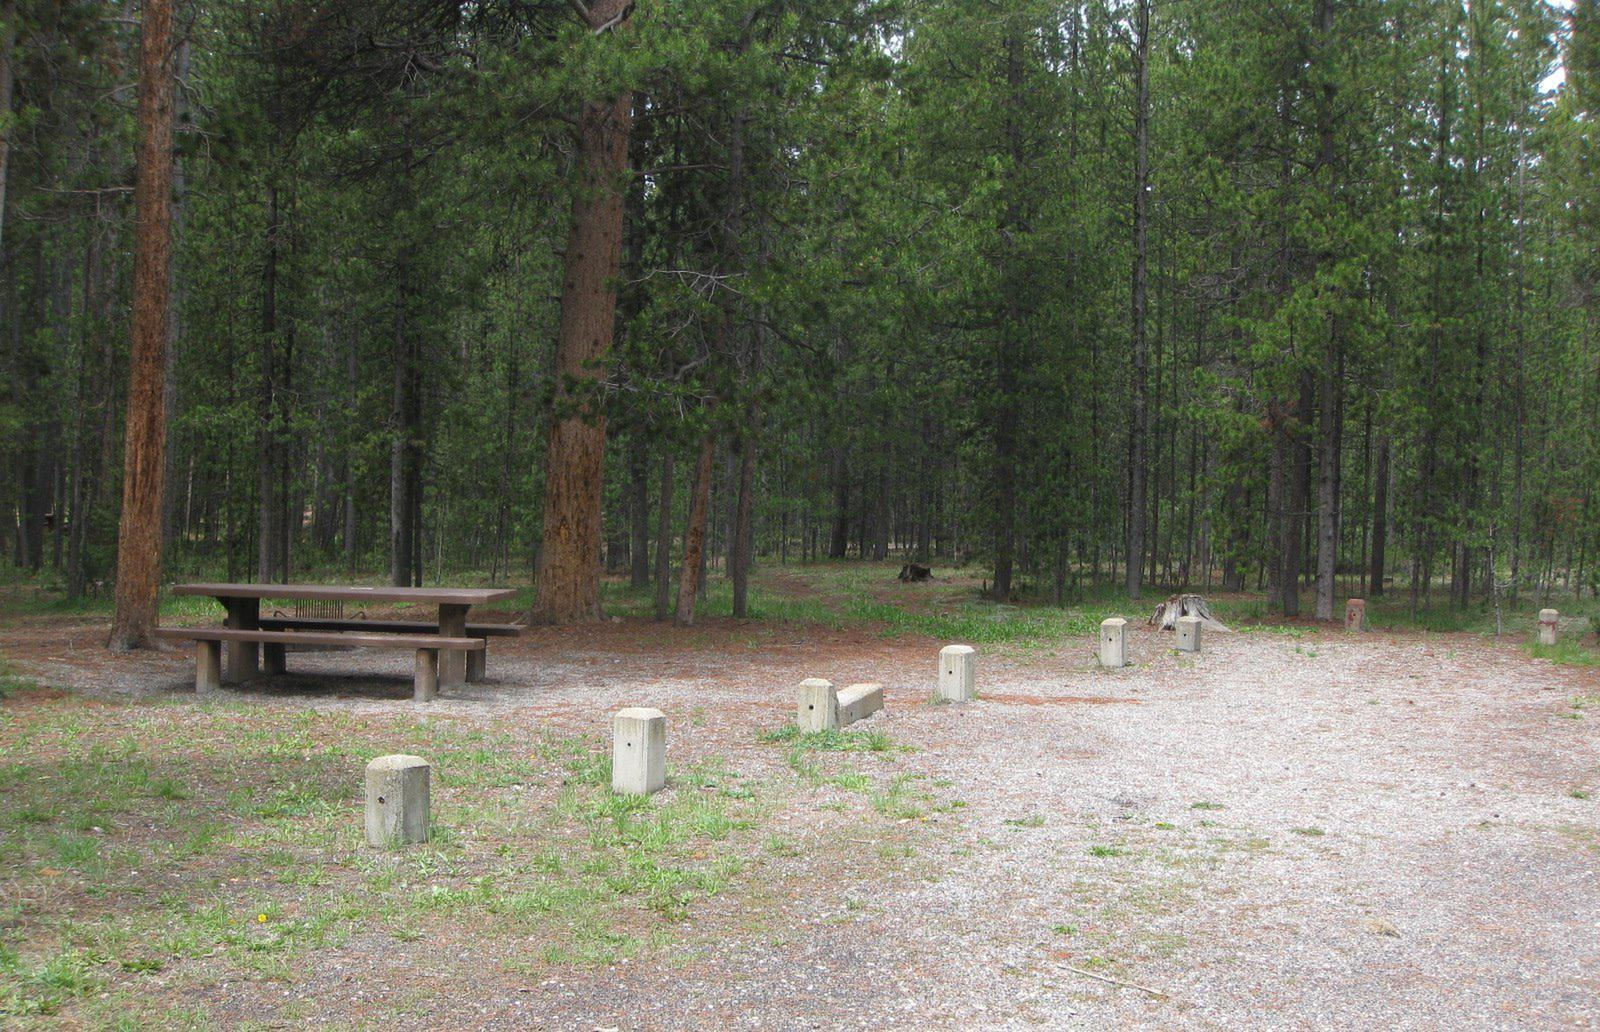 Site A1, surrounded by pine trees, picnic table & fire ringCampsite A1